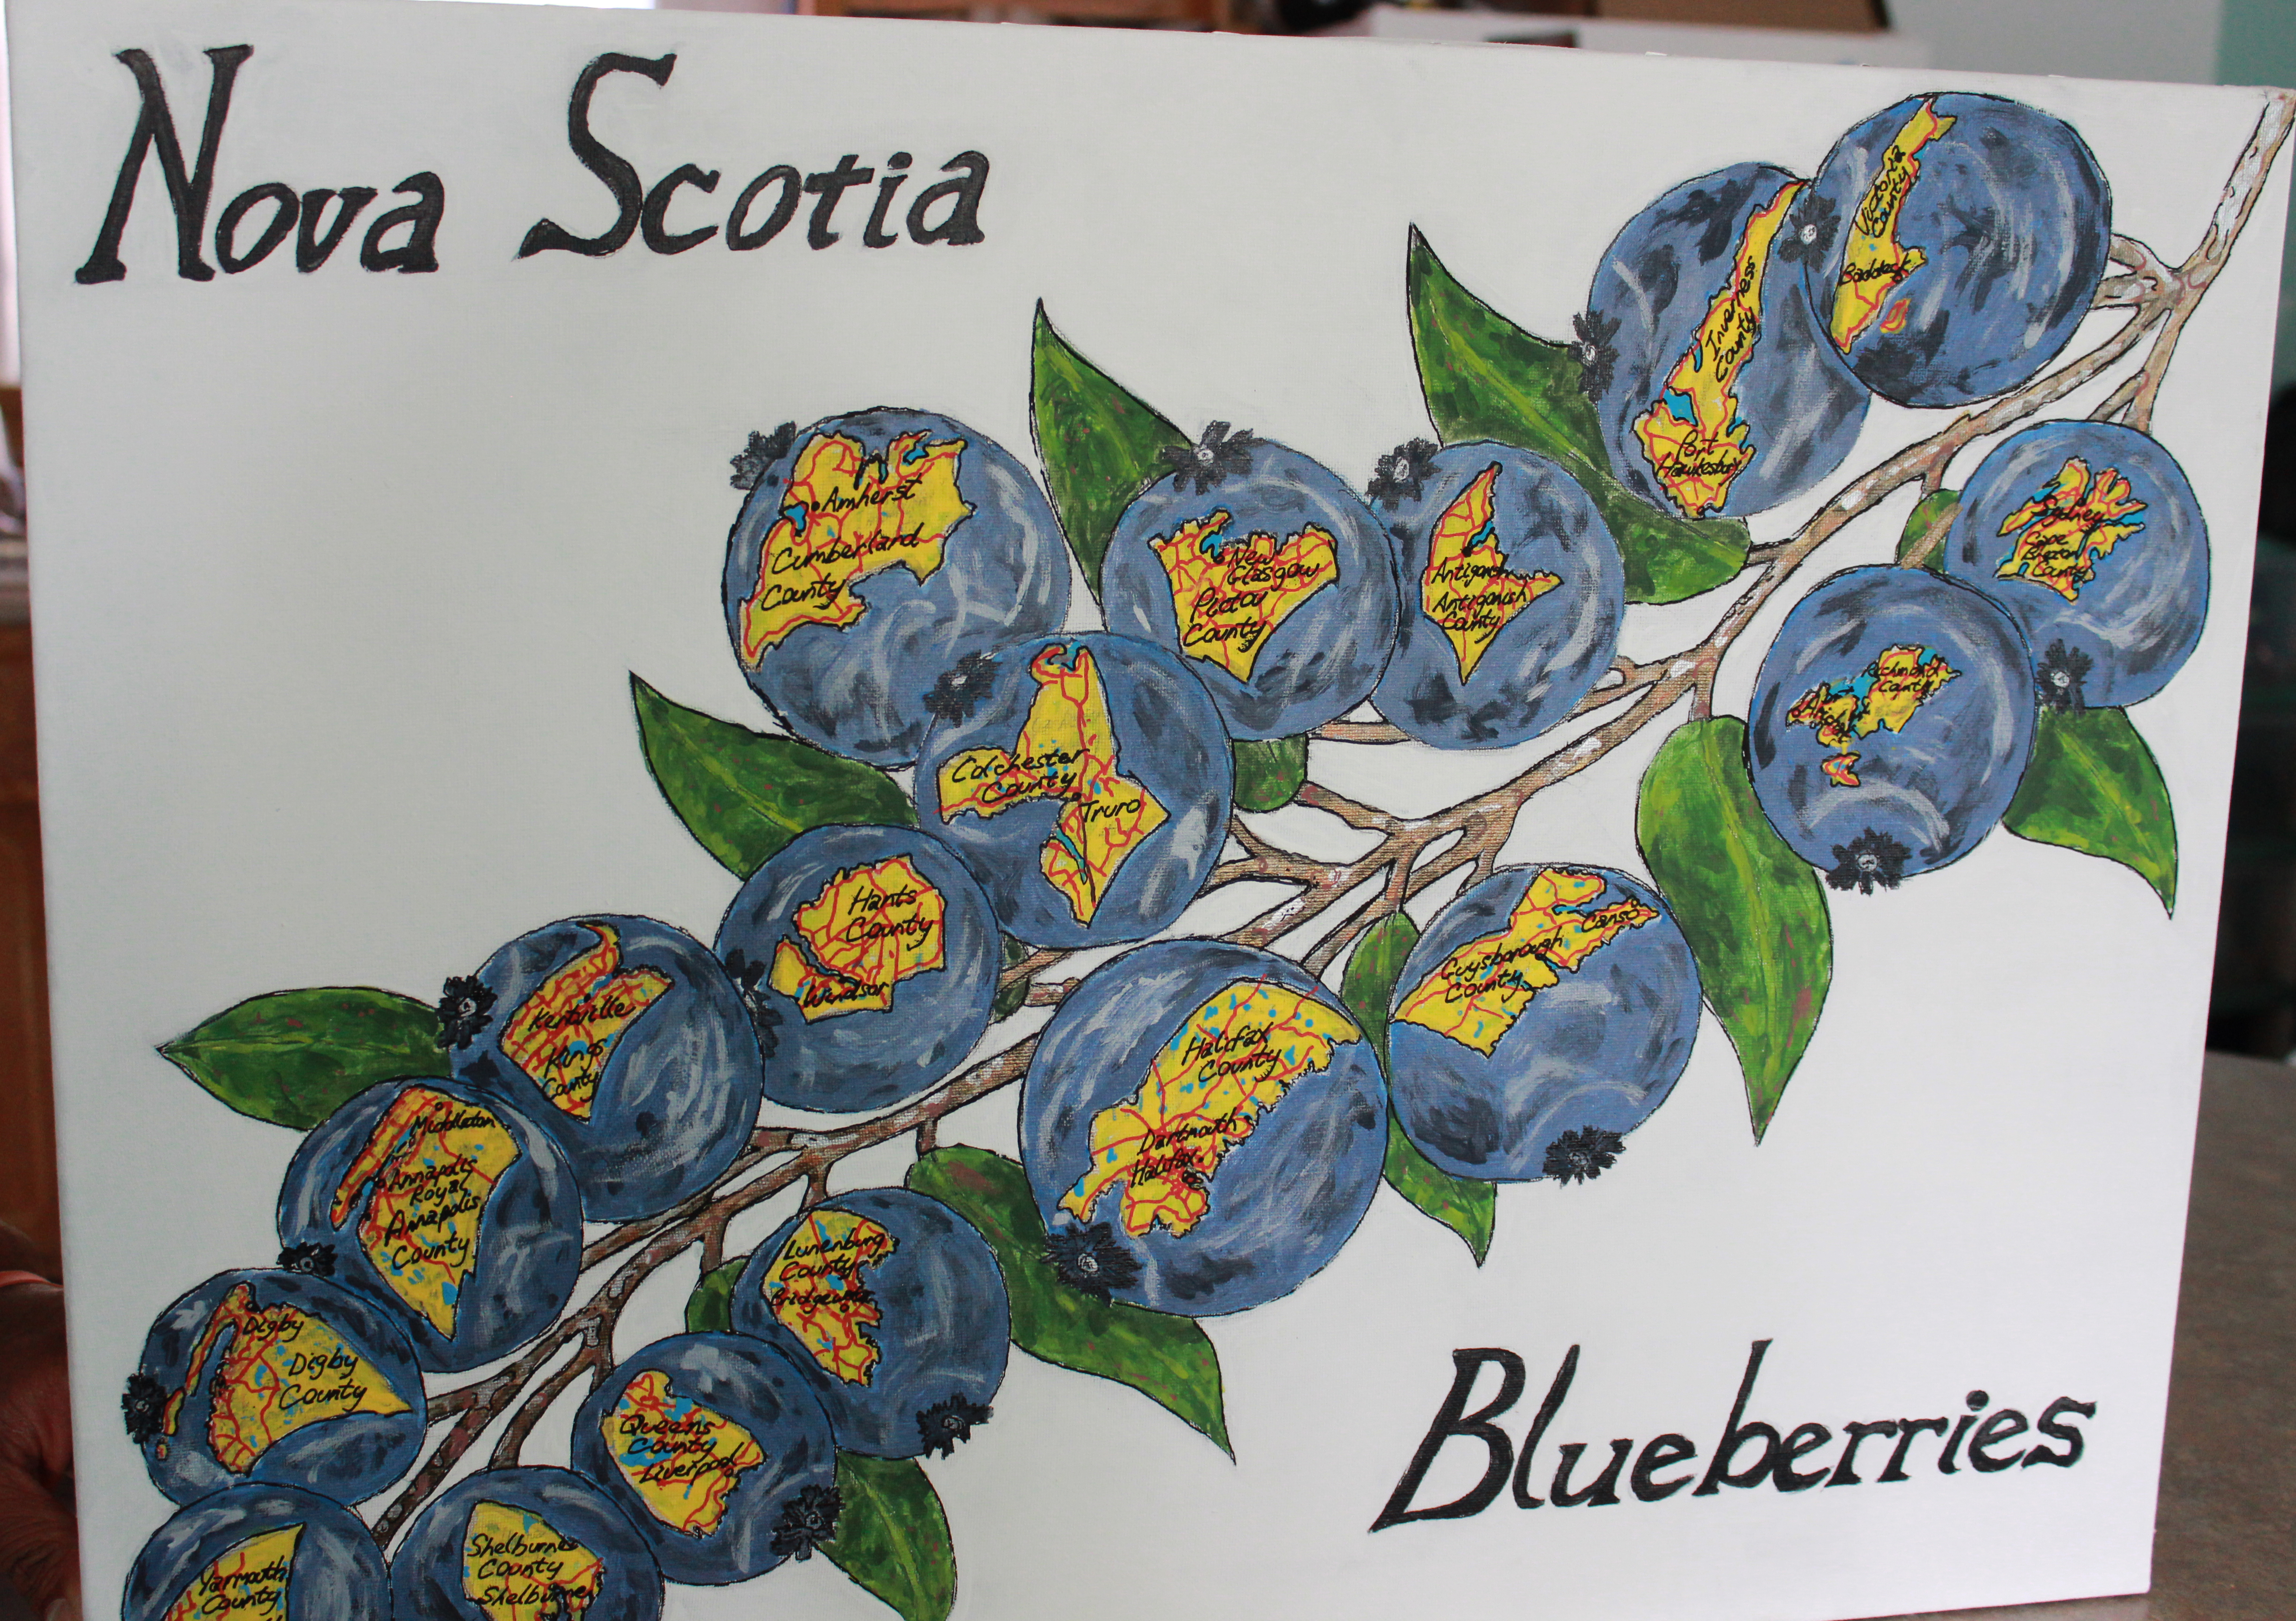 Nova Scotia Blueberries